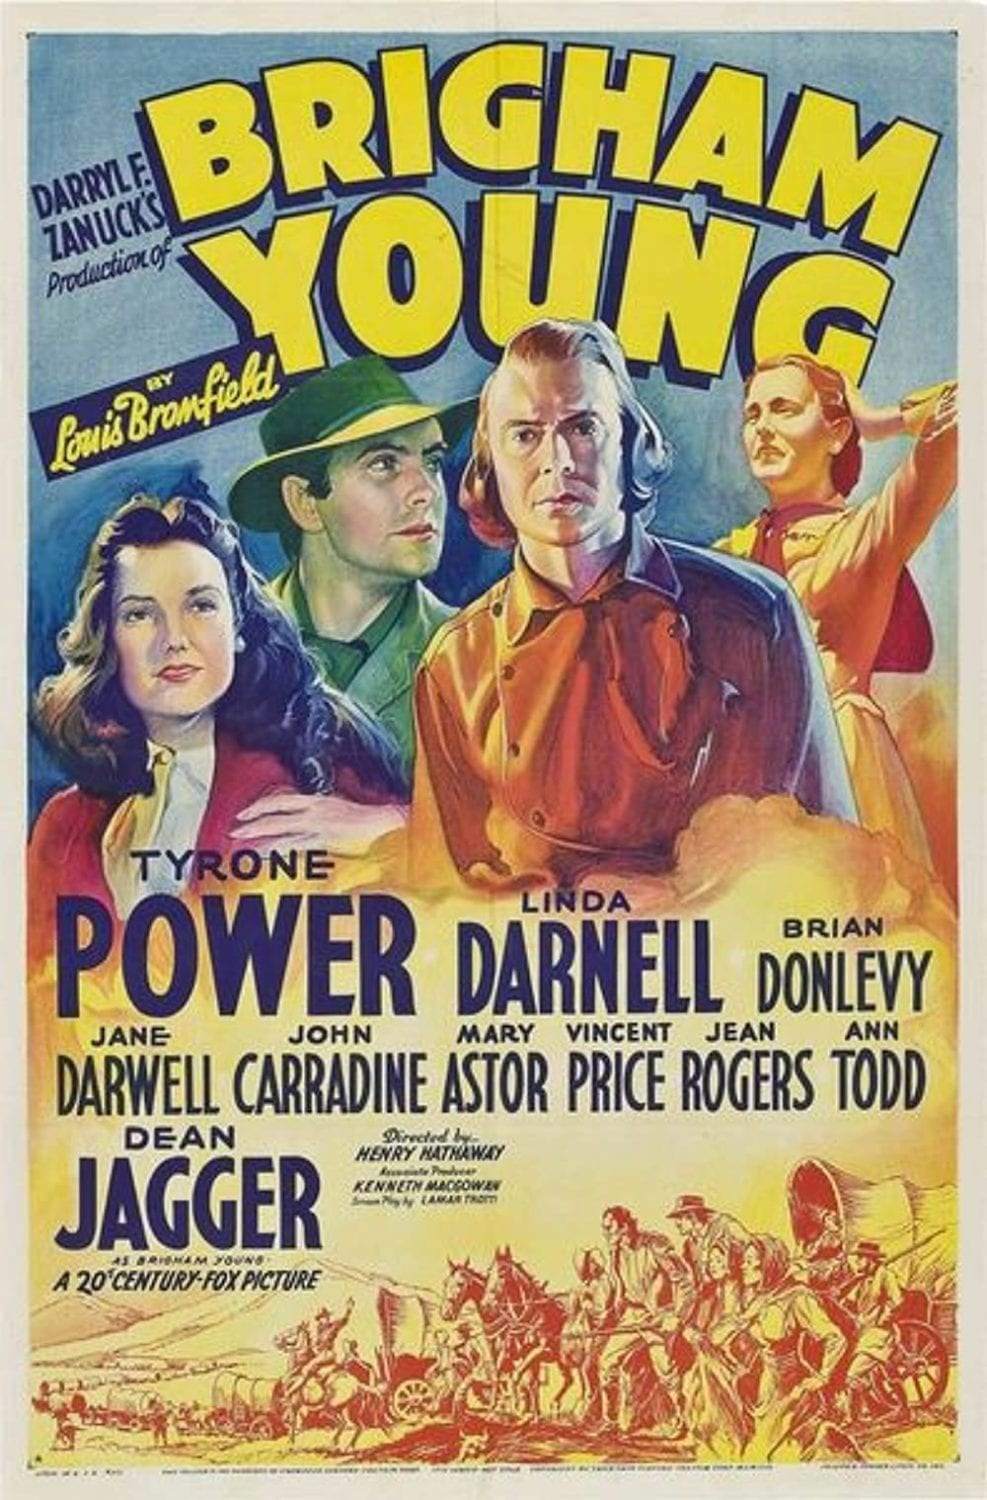 1940 Brigham Young Poster